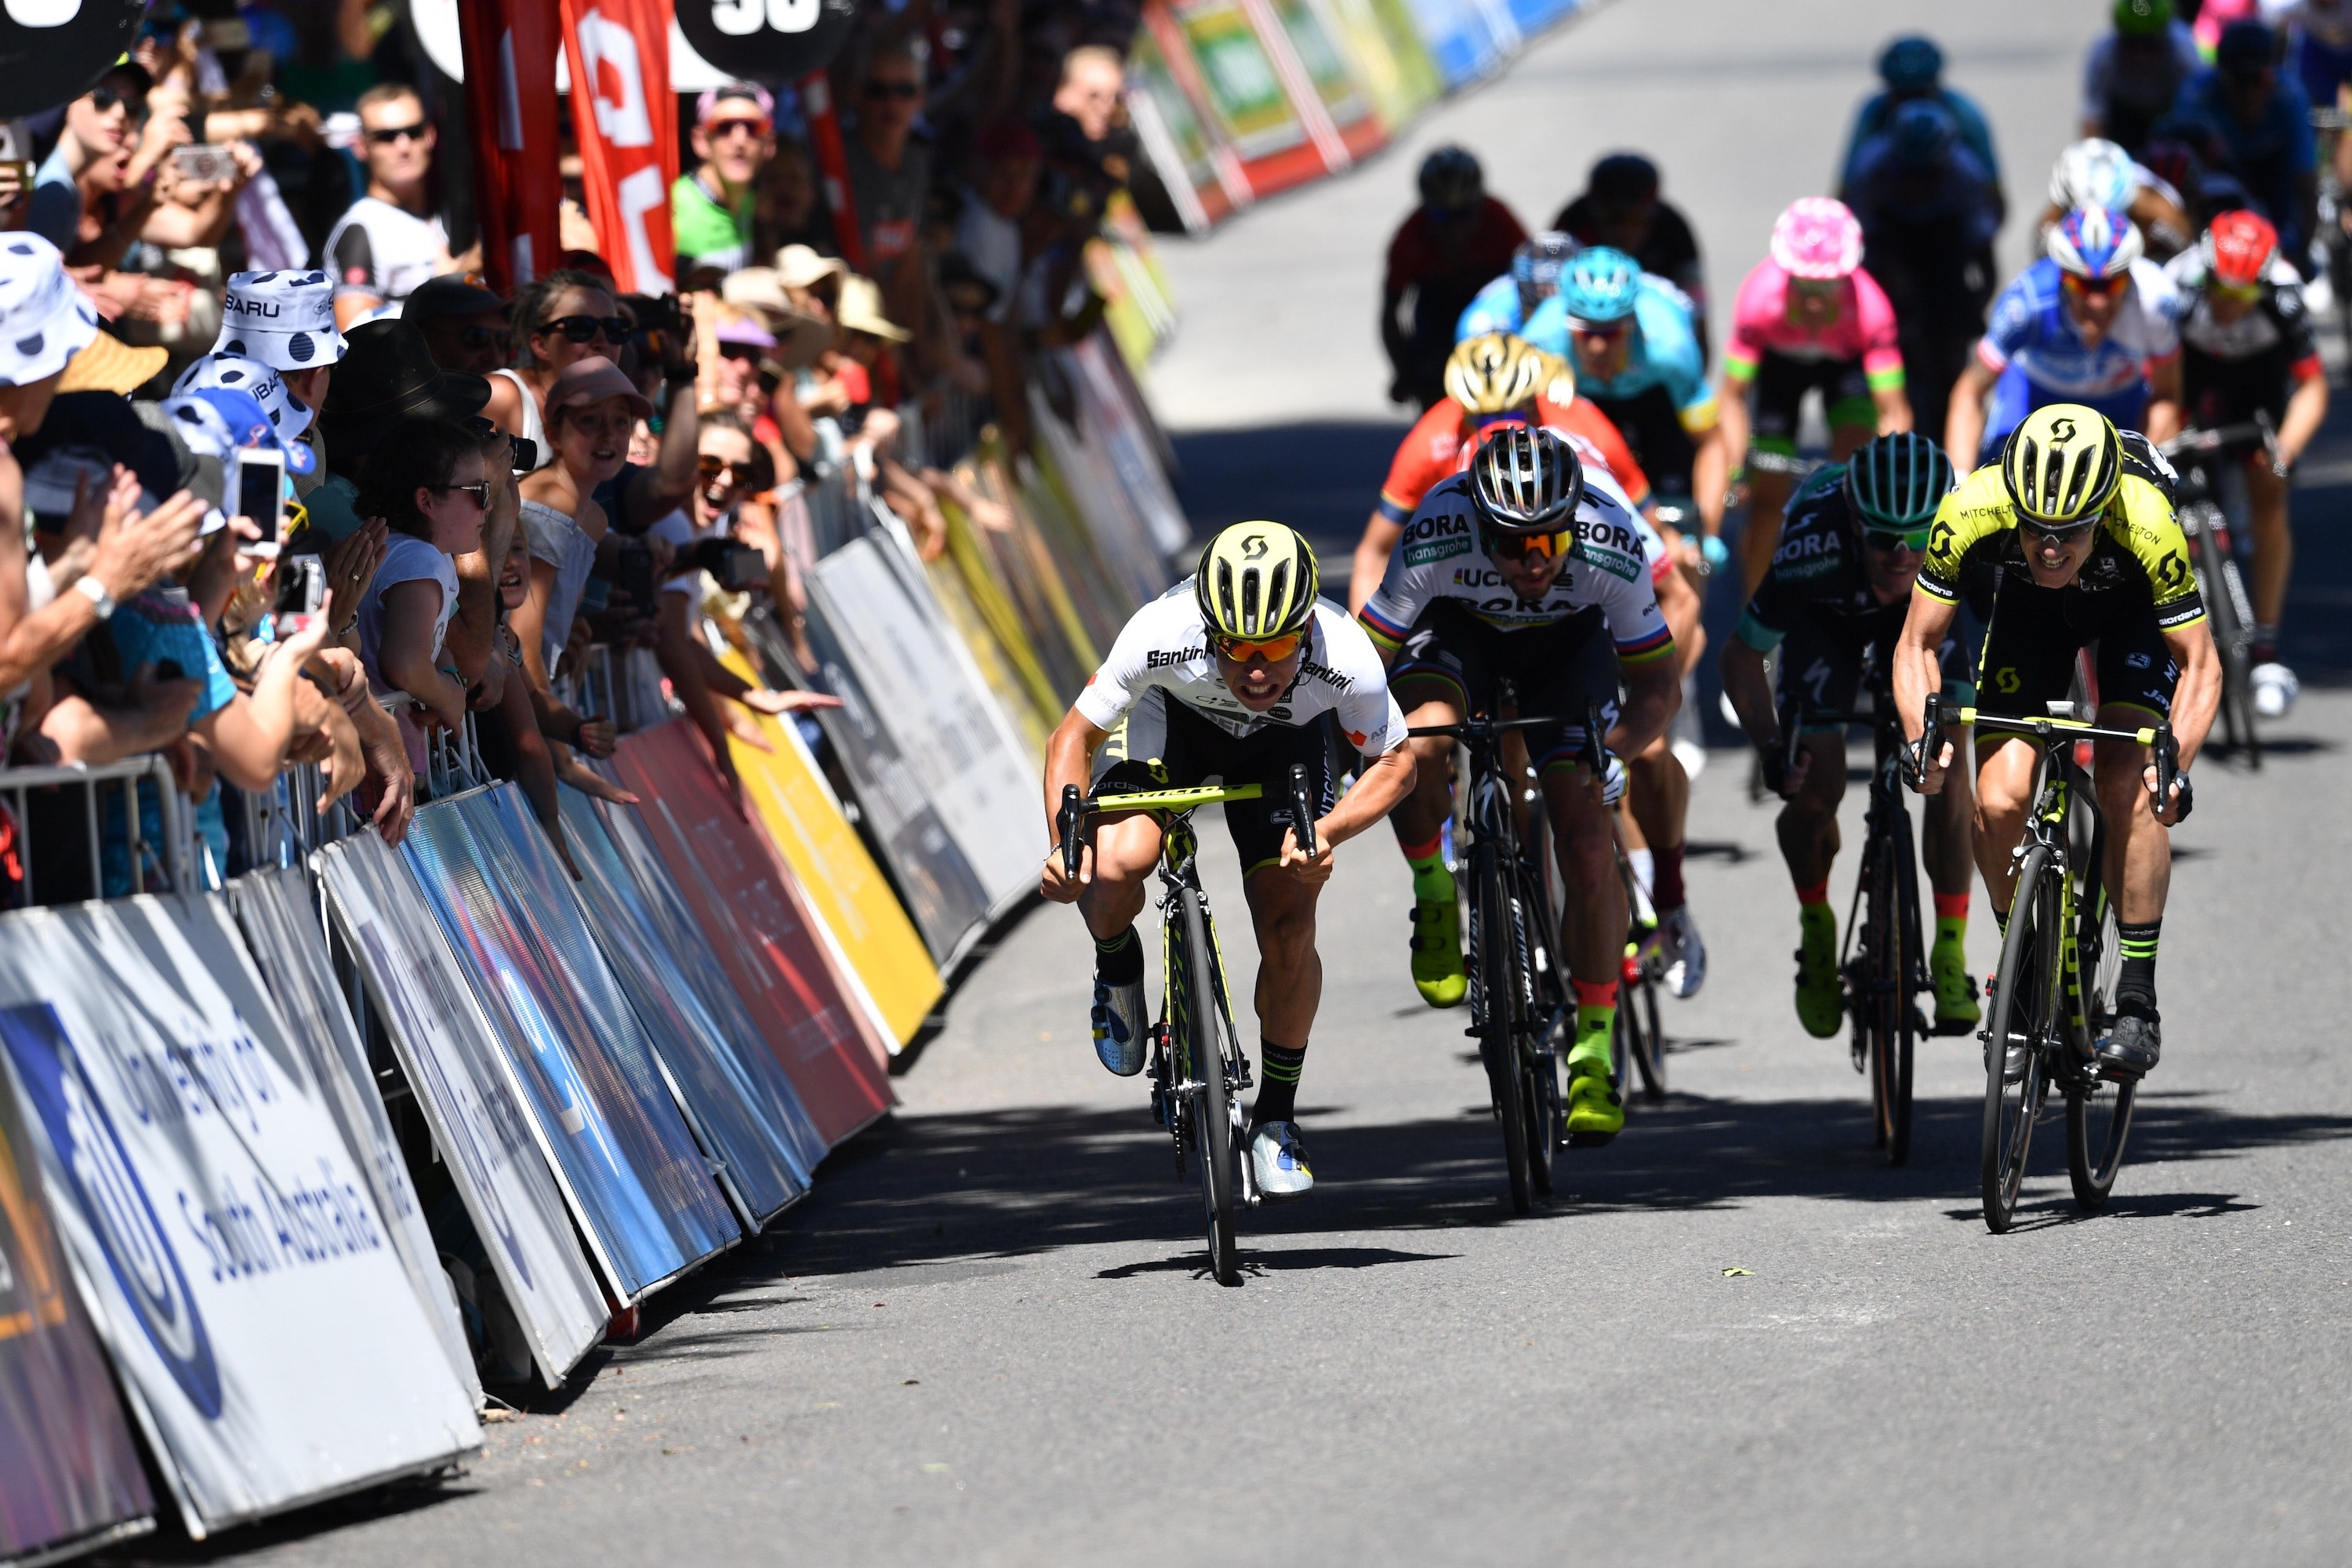 Your Riding Position Can Give You An Advantage In A Road Cycling Sprint